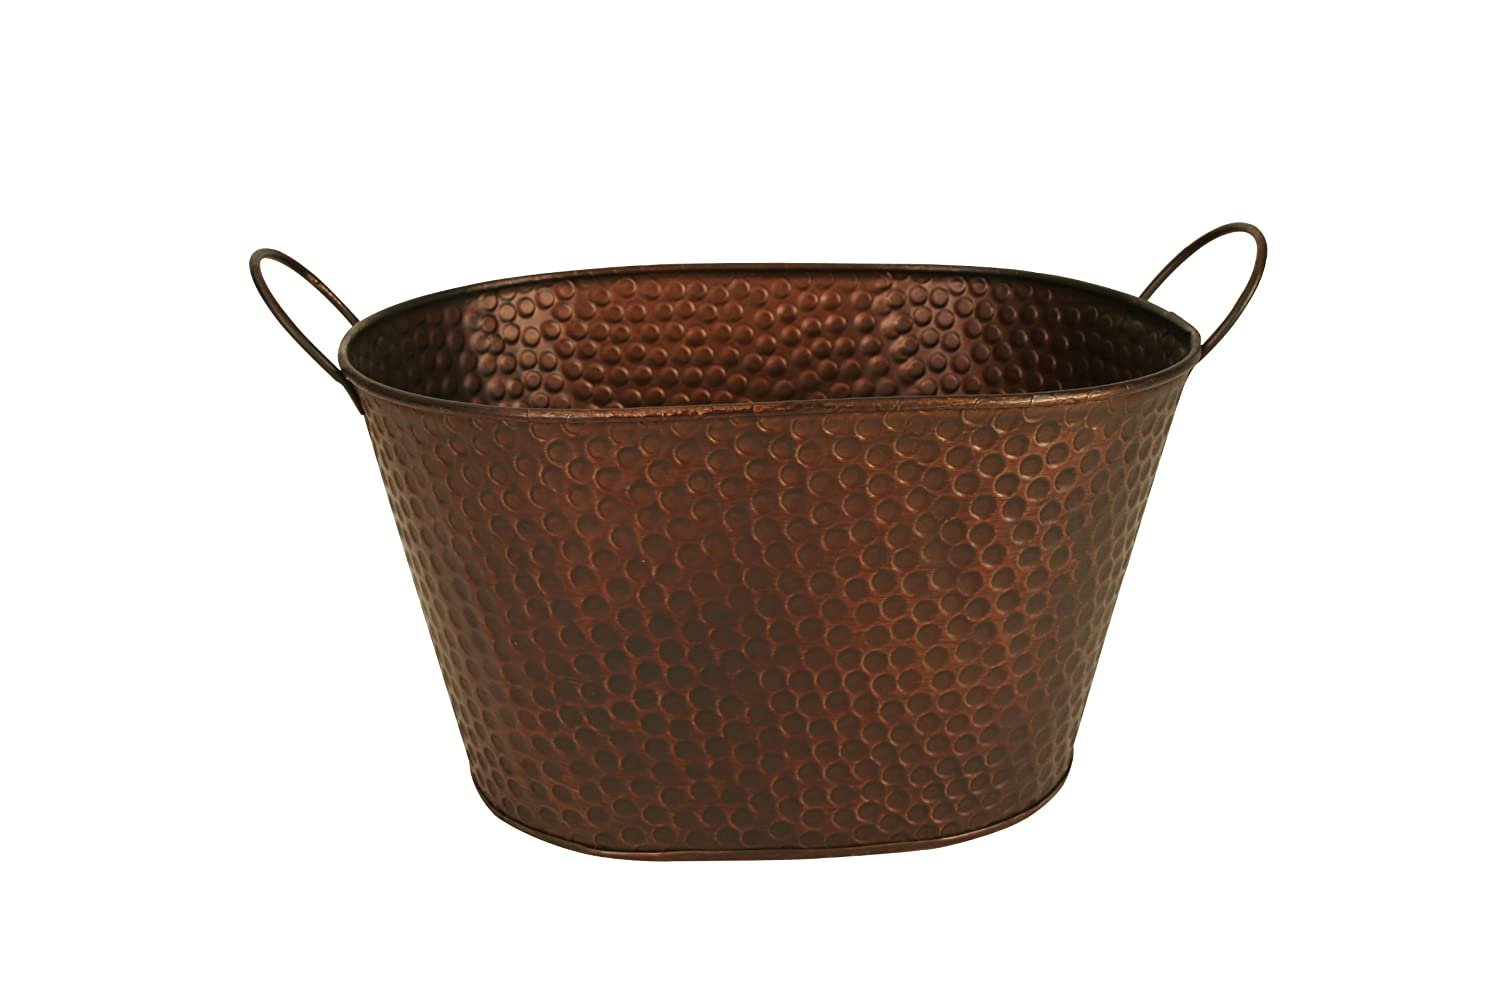 Wald Imports 7105/10B Copper Hammered Metal 10.5 Beverage Bucket/Pail/Tub, Bronze, 10.5 Inch Bowl